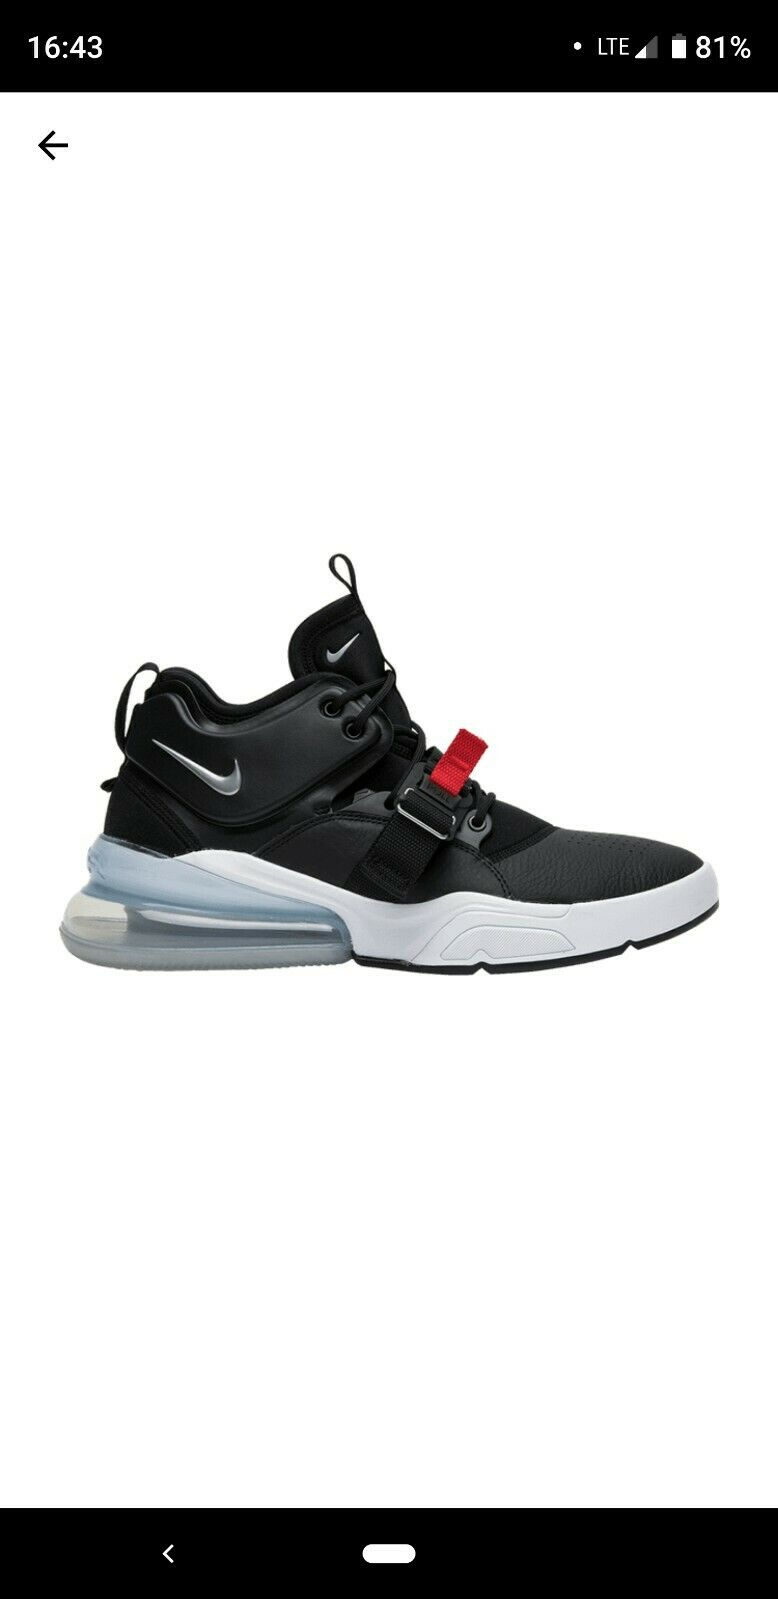 NIKE AIR FORCE 270 AH6772-001 BLACK WHITE RED size 8